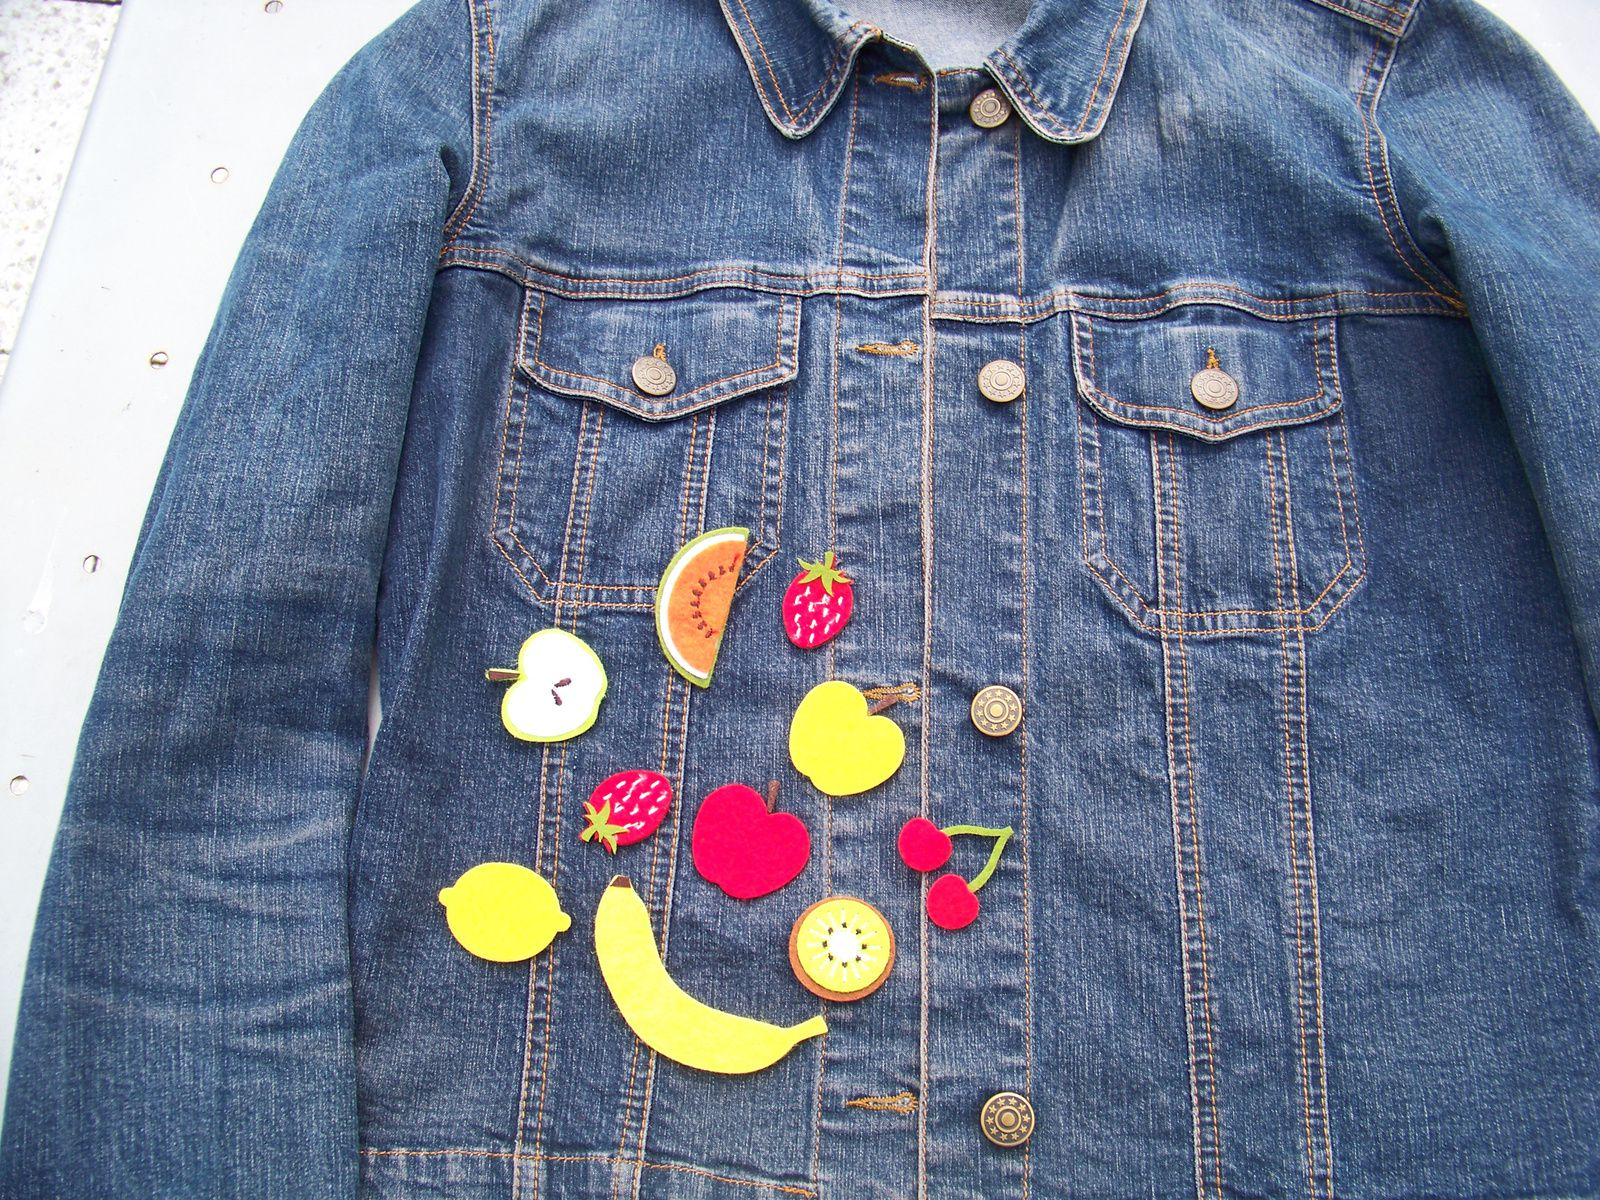 Les fruits de l'été  version badges sur la veste en jeans!